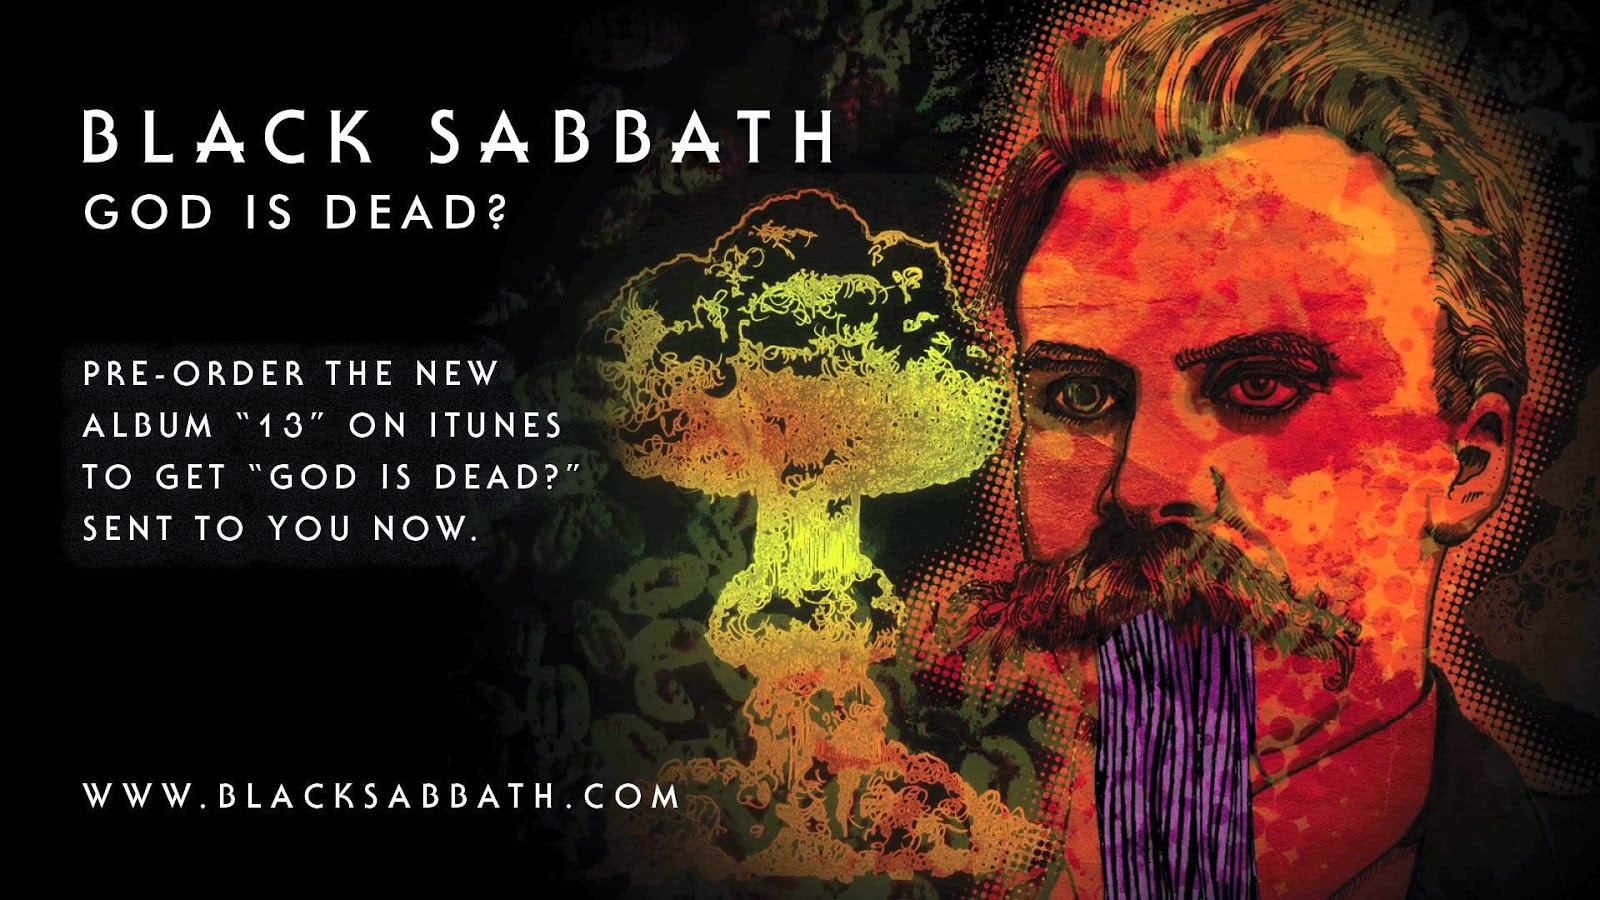 God Is Dead? Black Sabbath